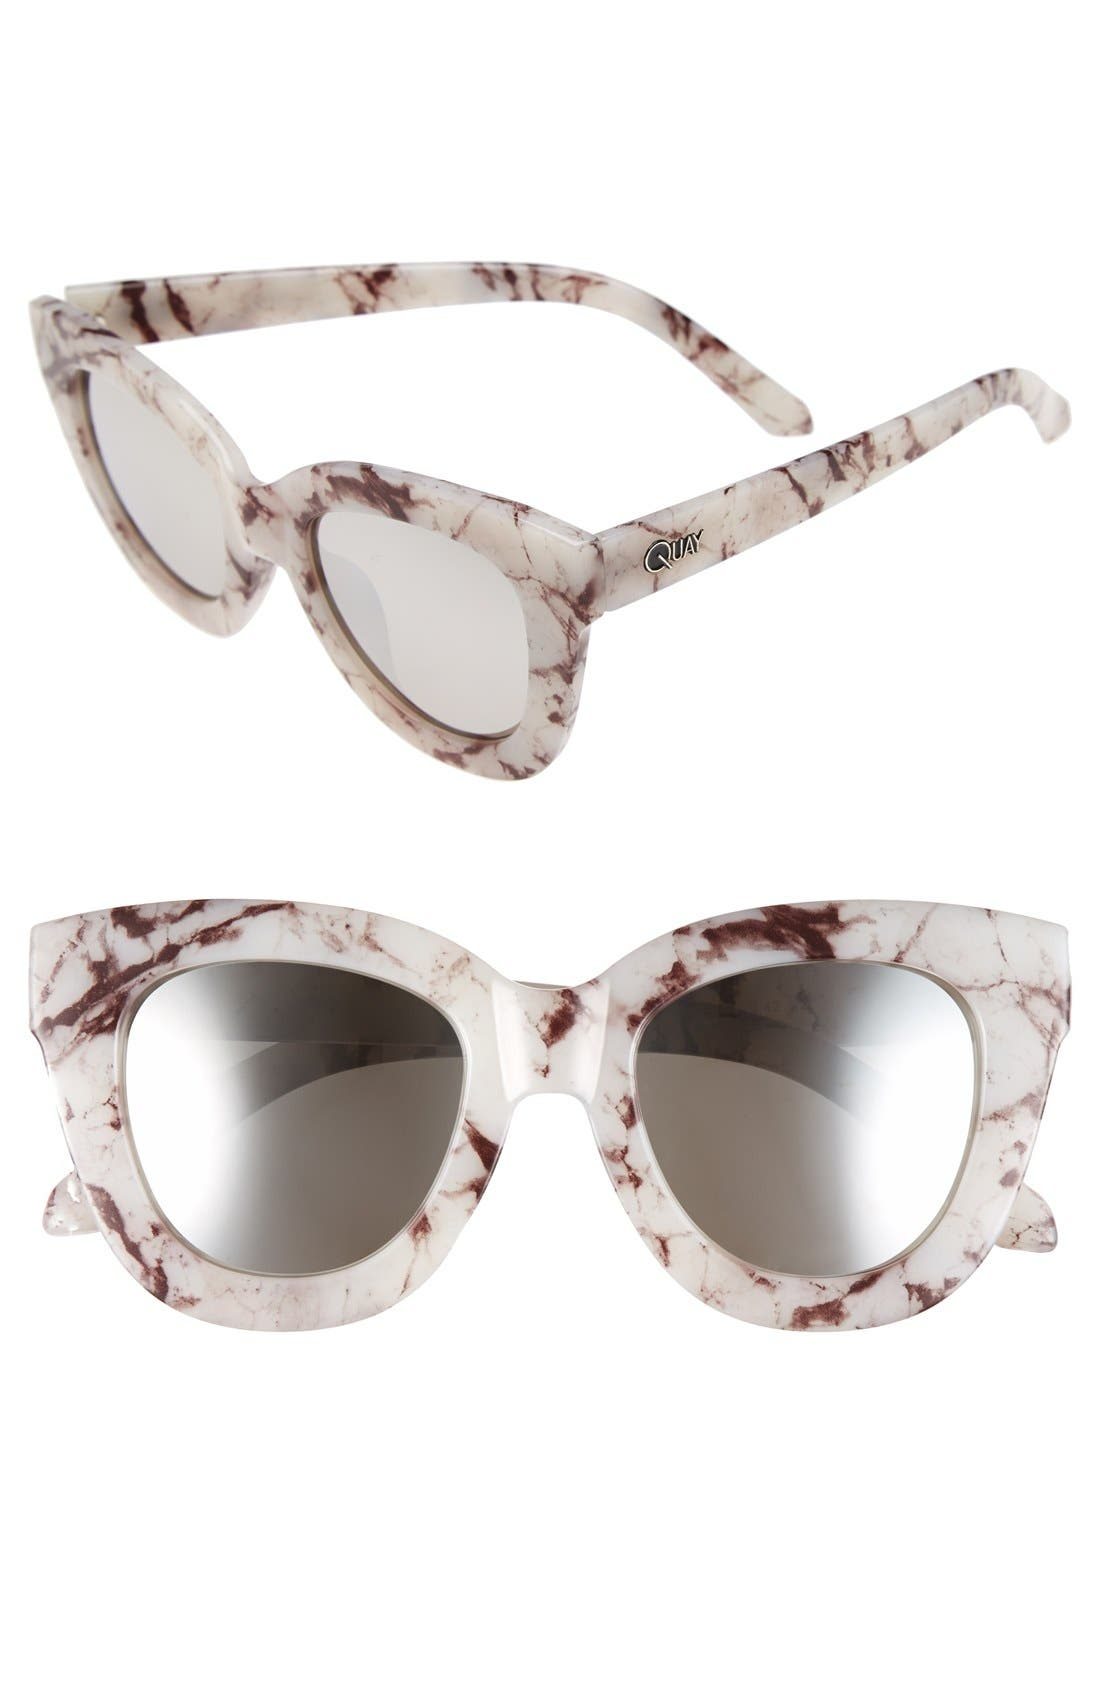 'Sugar and Spice' 50mm Cat Eye Sunglasses,                             Main thumbnail 1, color,                             White Marble/ Smoke Lens